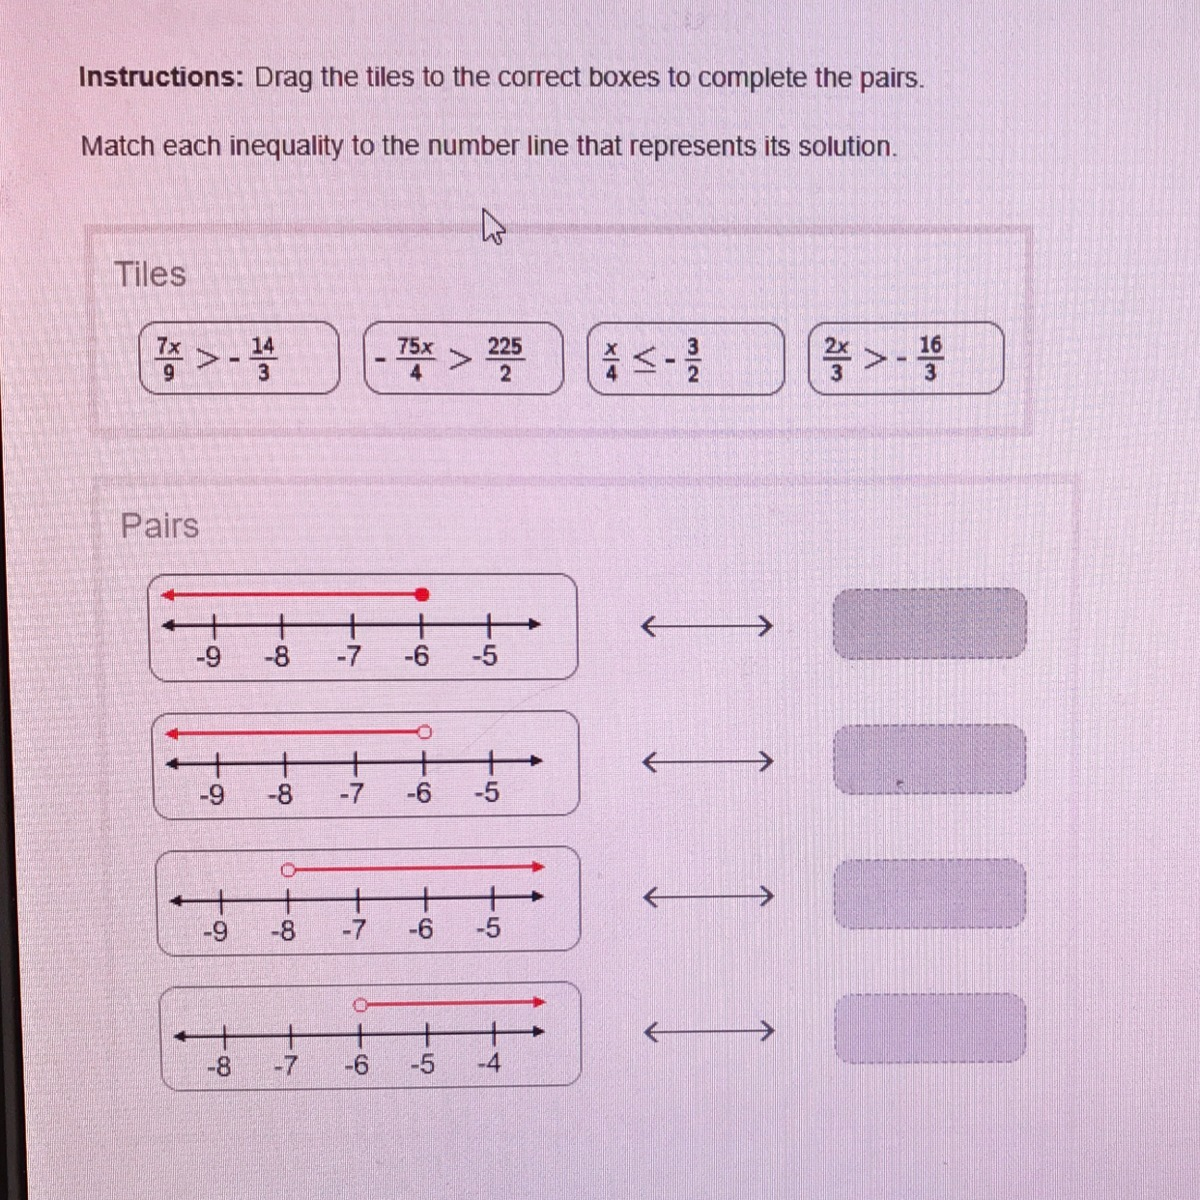 Match The Inequality To The Number Line That Represents